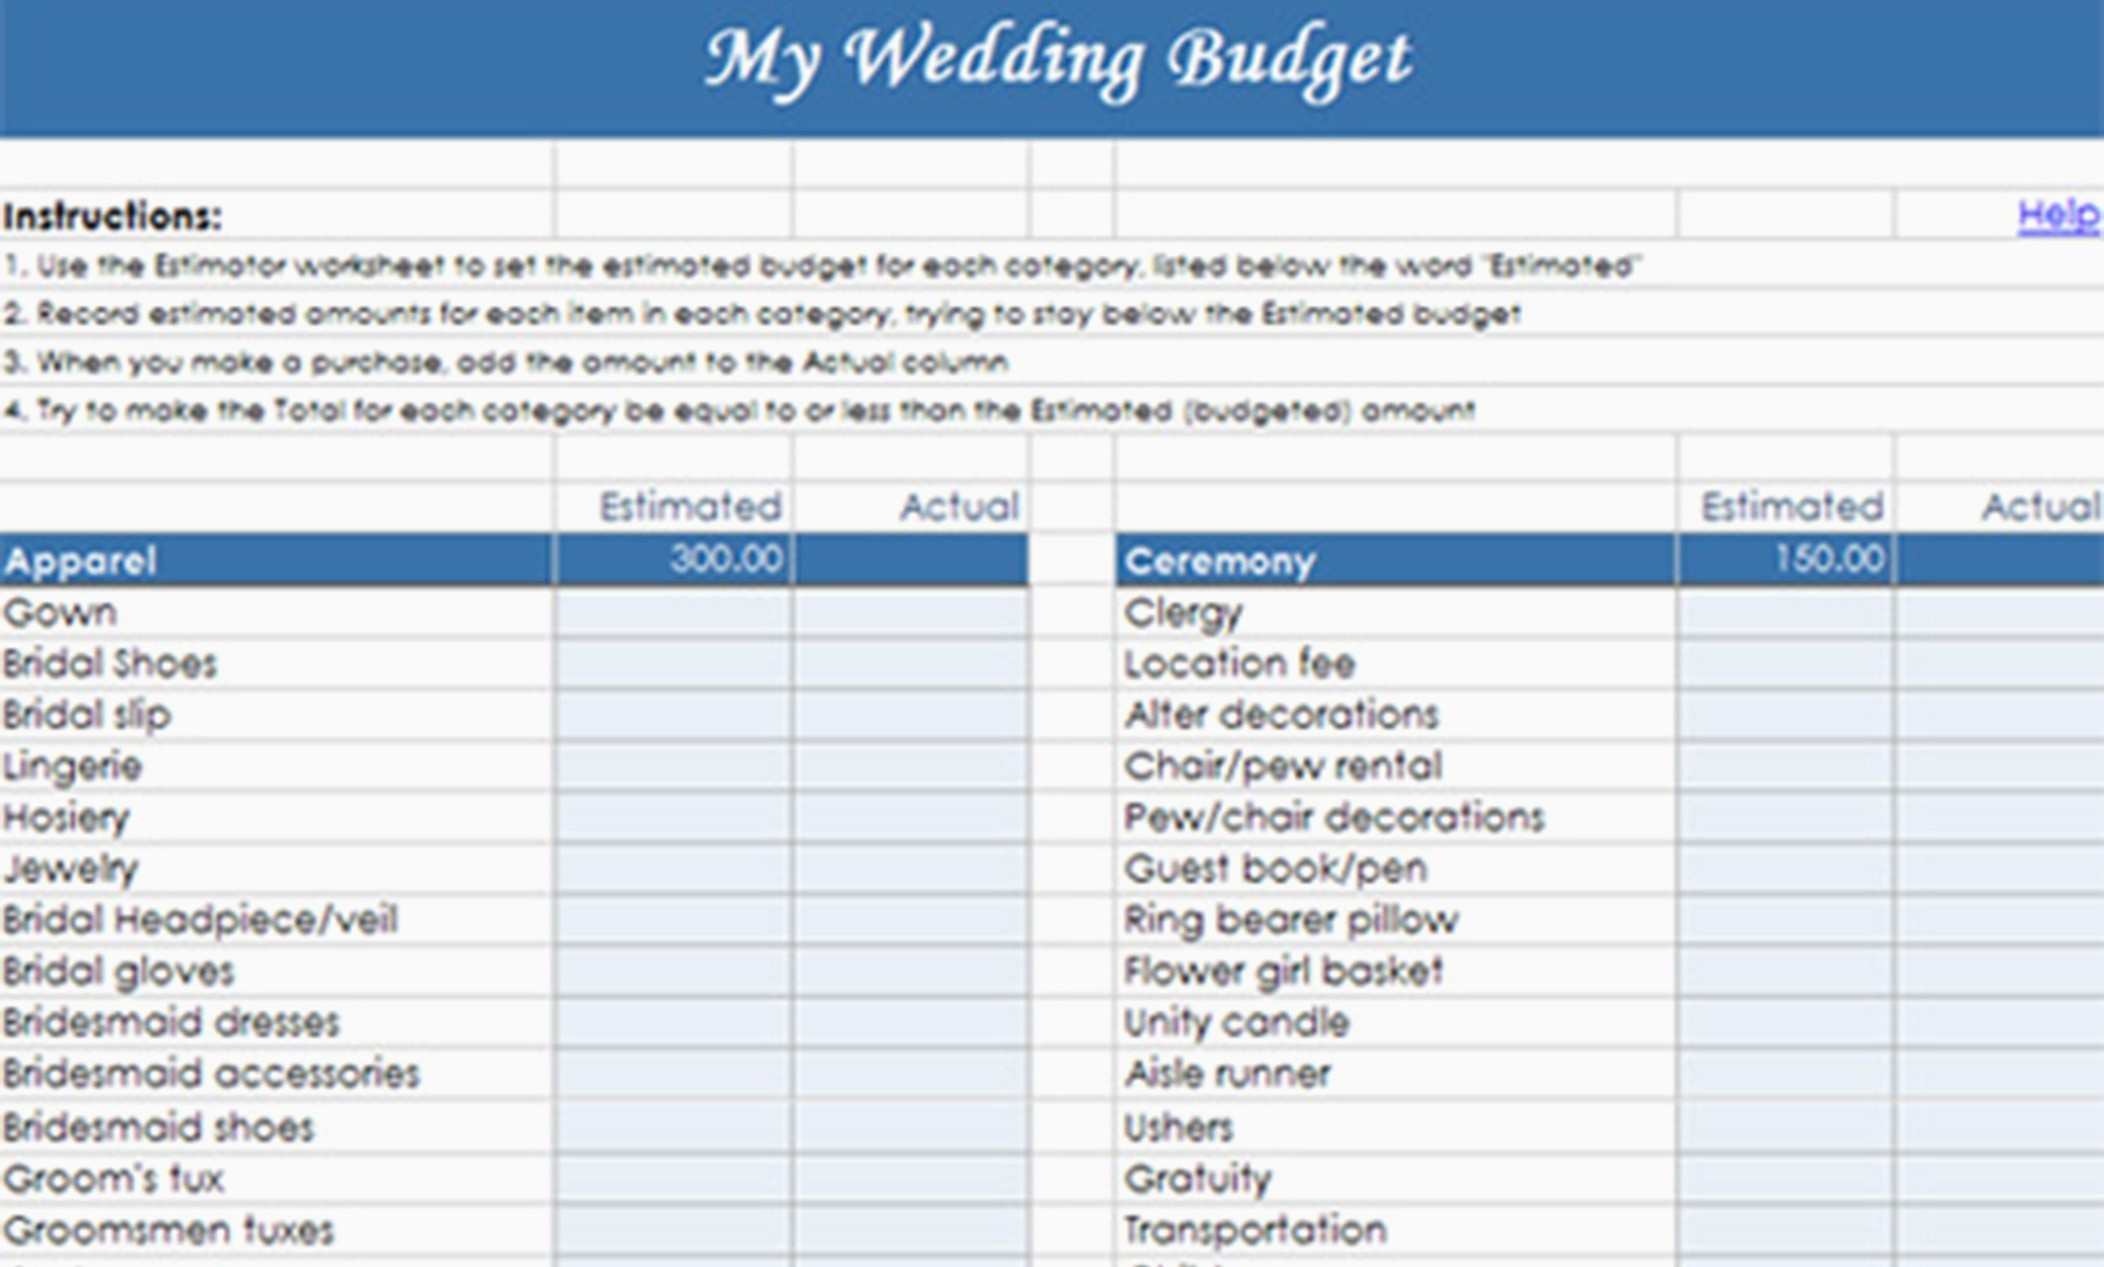 How To Budget For A Wedding Spreadsheet Throughout How To Budget For Wedding Spreadsheet Branded Budgets Pinterest